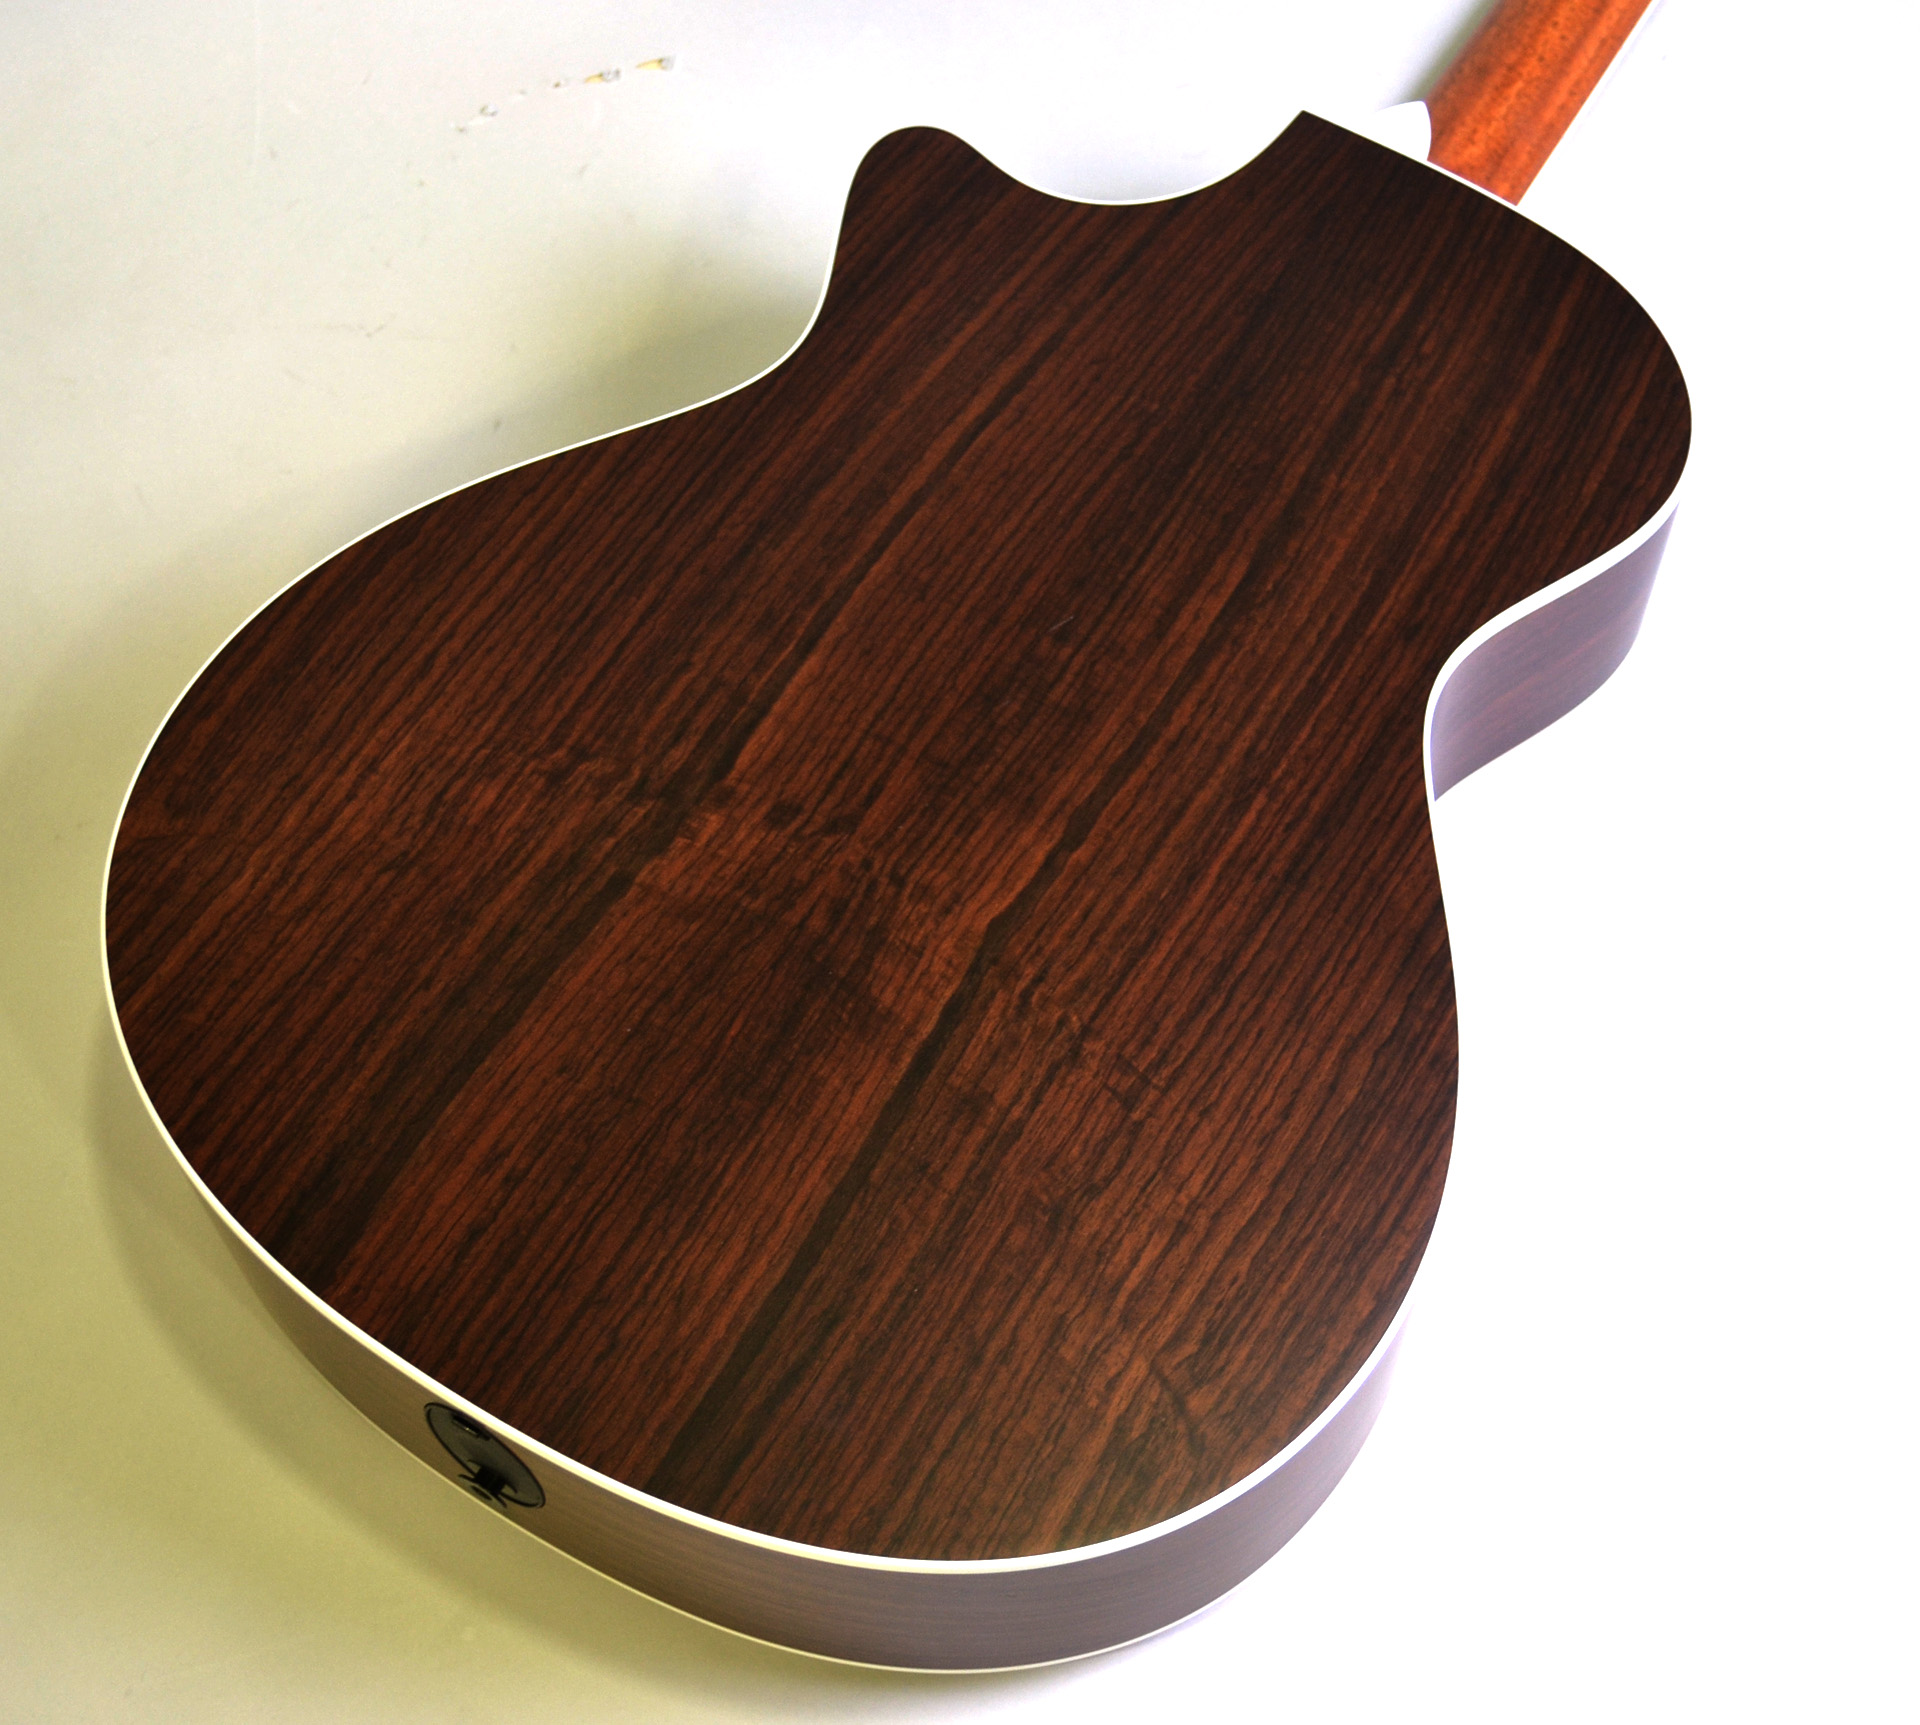 412ce Rosewood Japan Limited 2017の指板画像